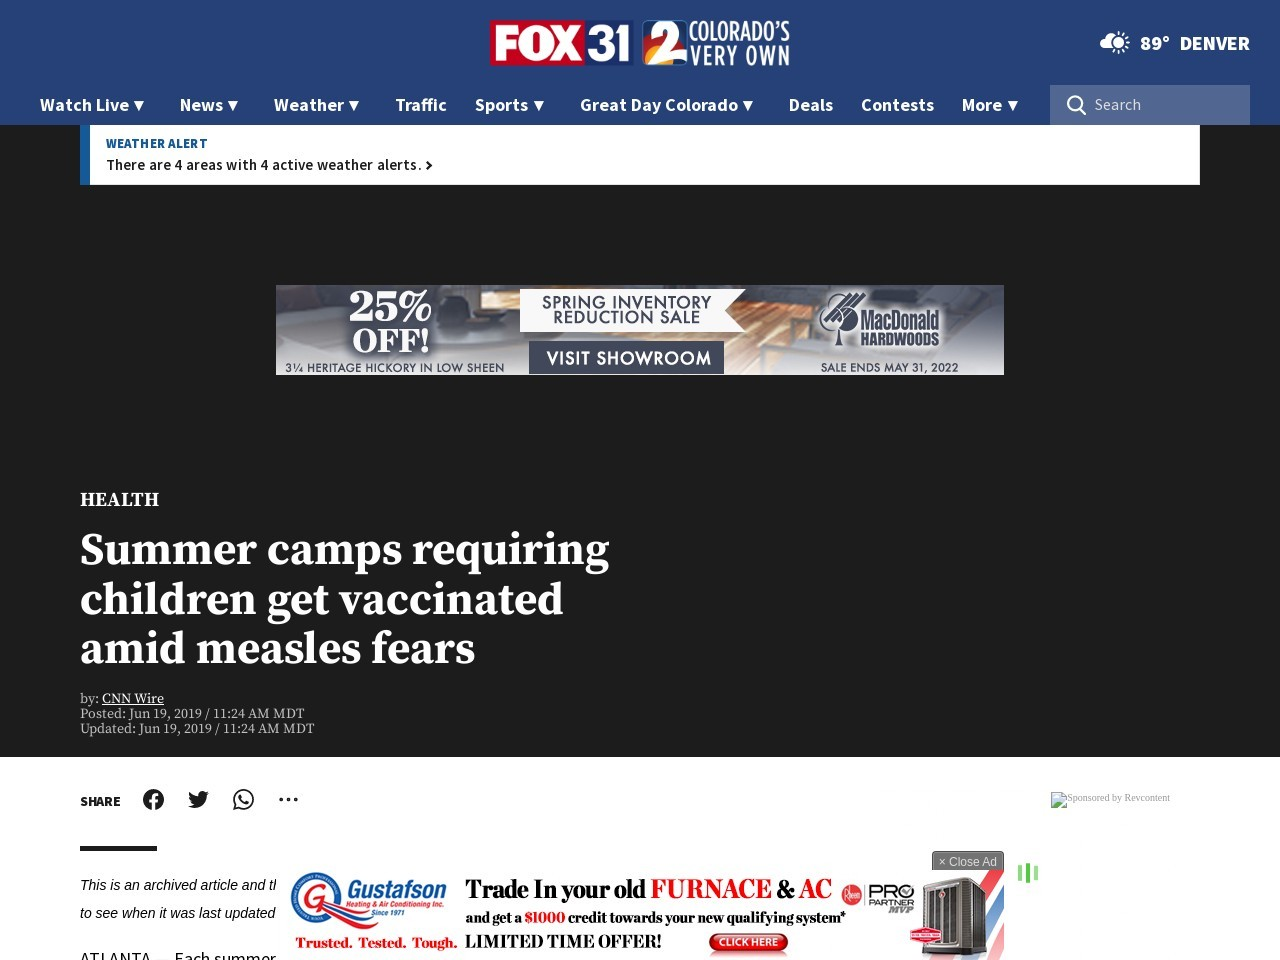 Summer camps requiring children get vaccinated amid measles fears